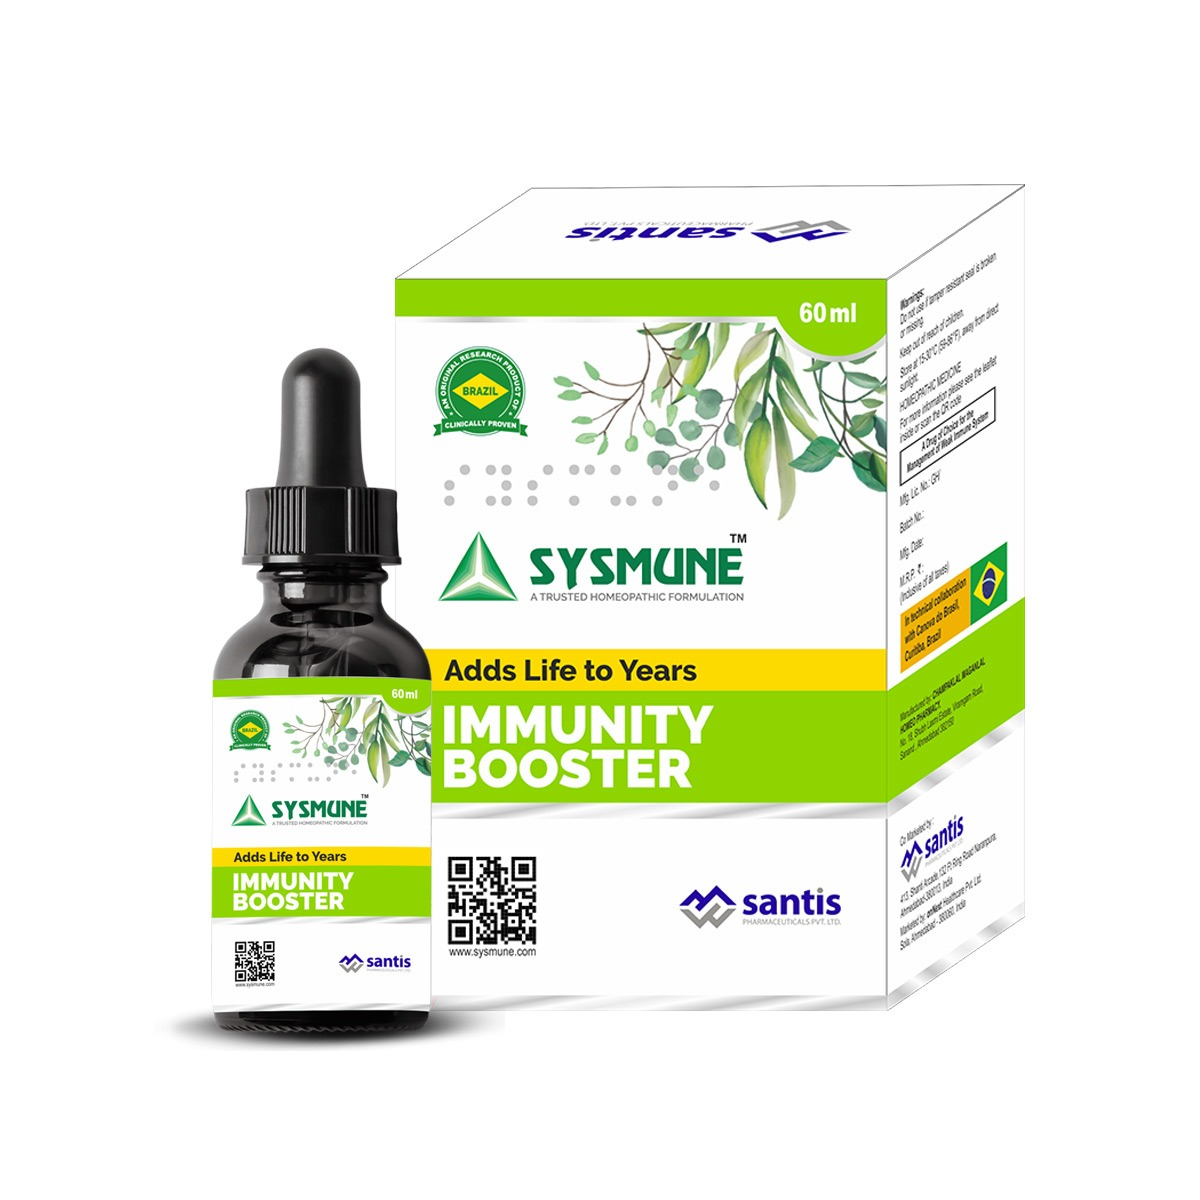 India's 1st scientifically researched and clinically proven immune system modifier which is truly safe & non toxic.